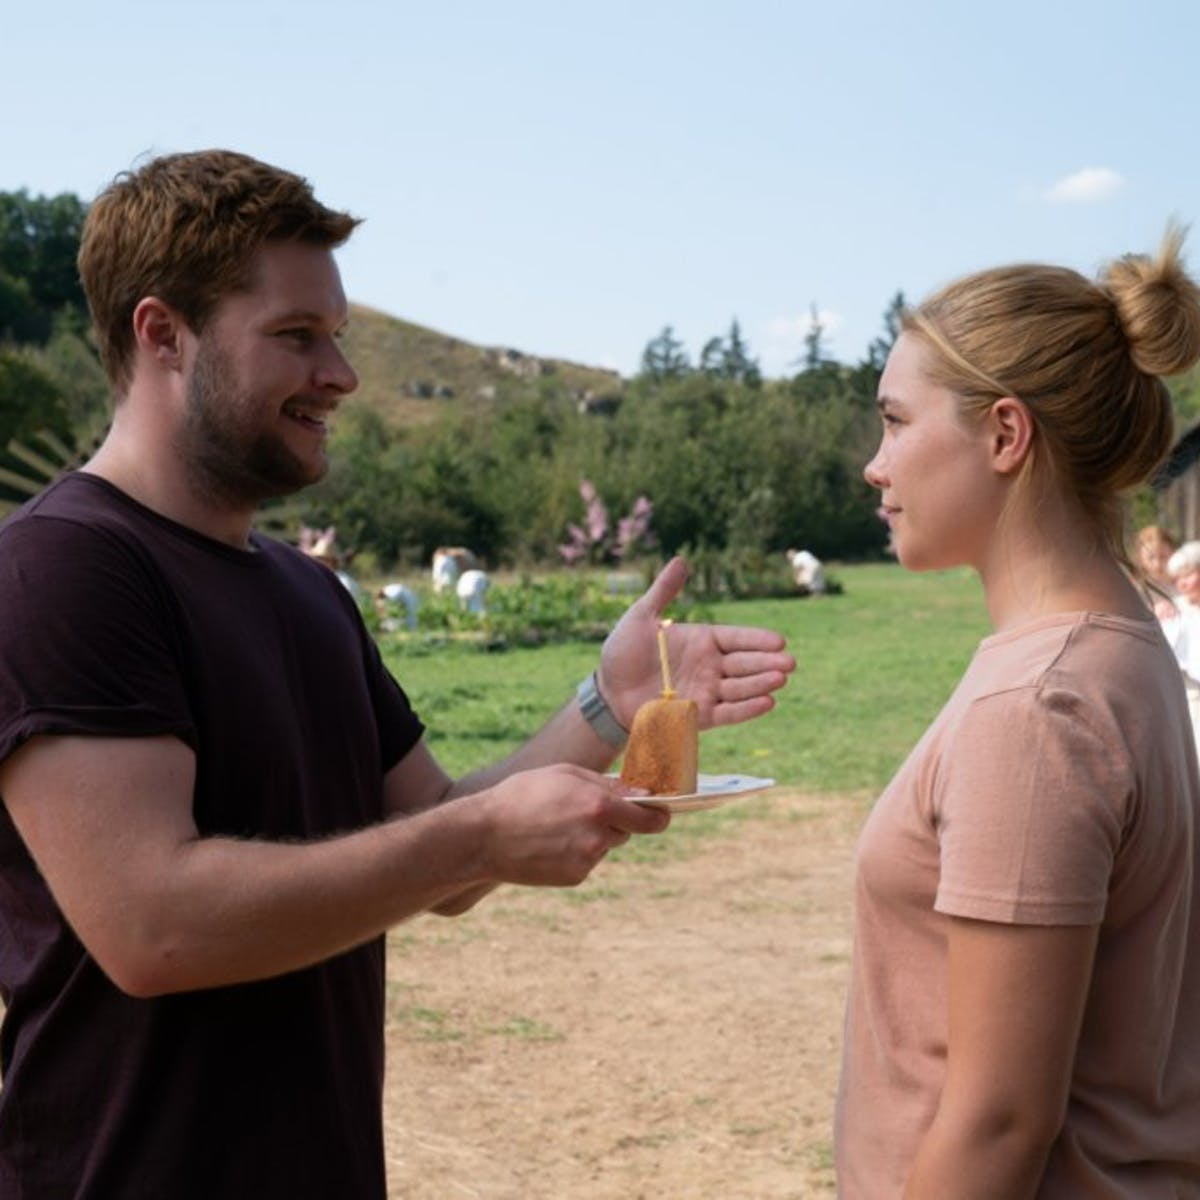 Midsommar' Spoilers: Ending Explained by Director Ari Aster | Inverse